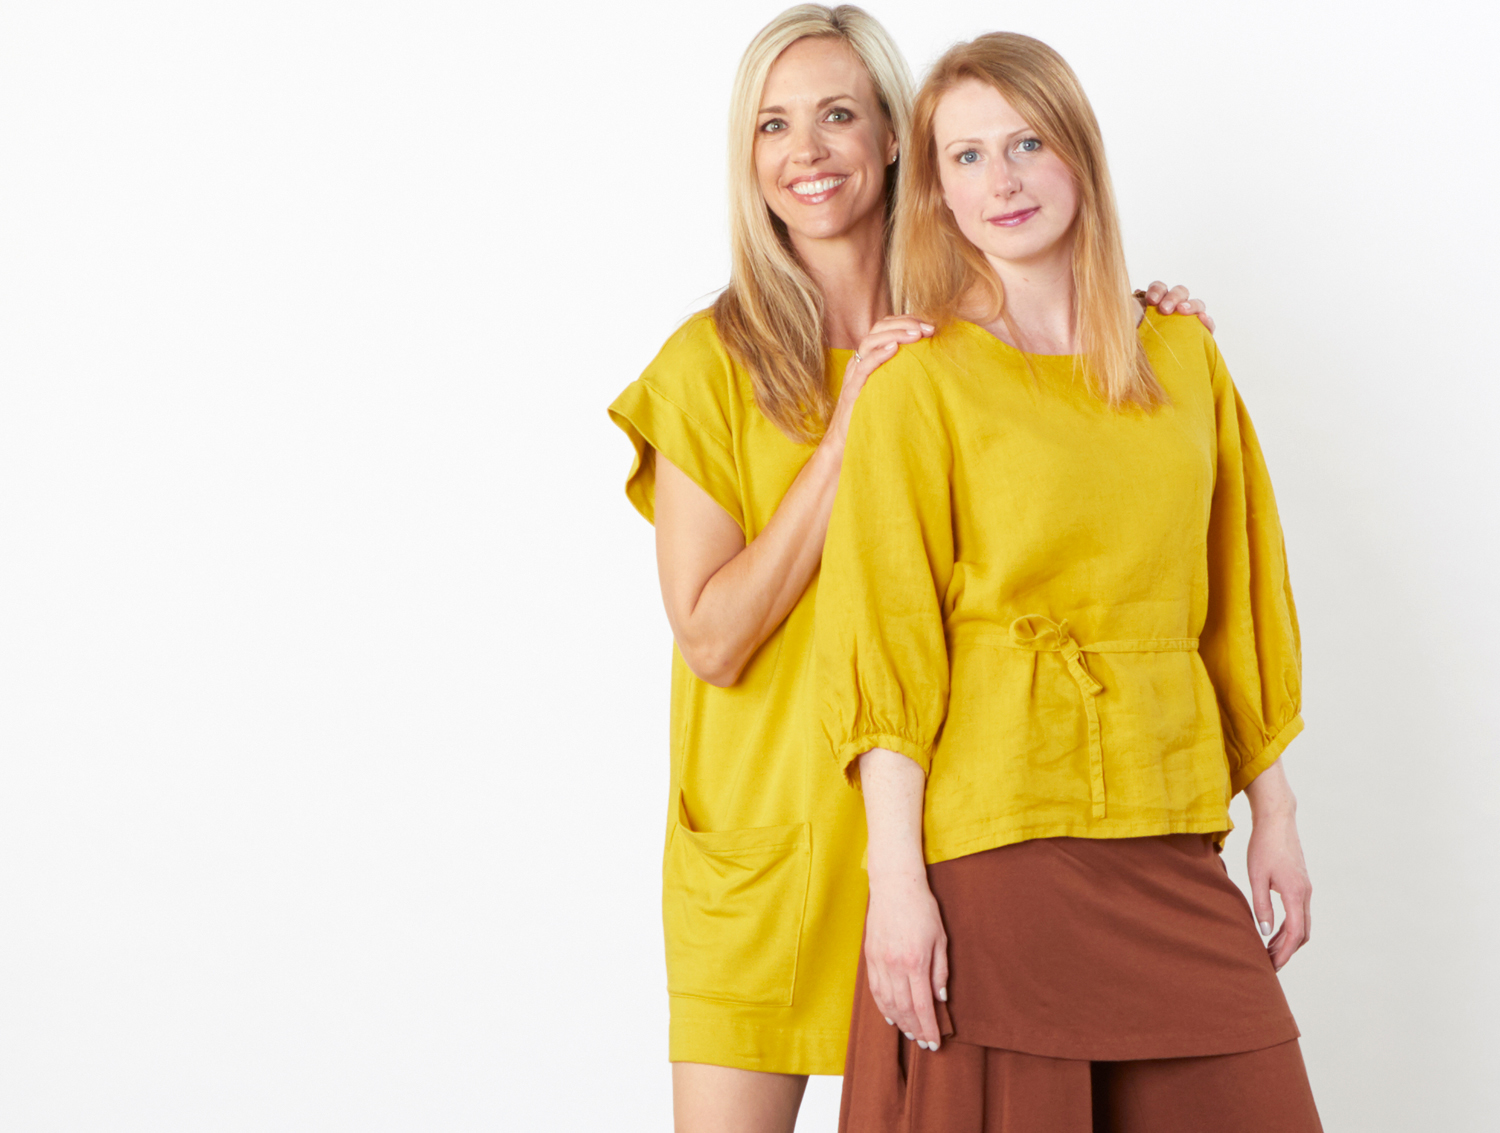 Clyde Tunic in Yuja Bamboo Terry, Cara Shirt in Yuja Light Linen, Eloise Pant in Madeira Bamboo Cotton